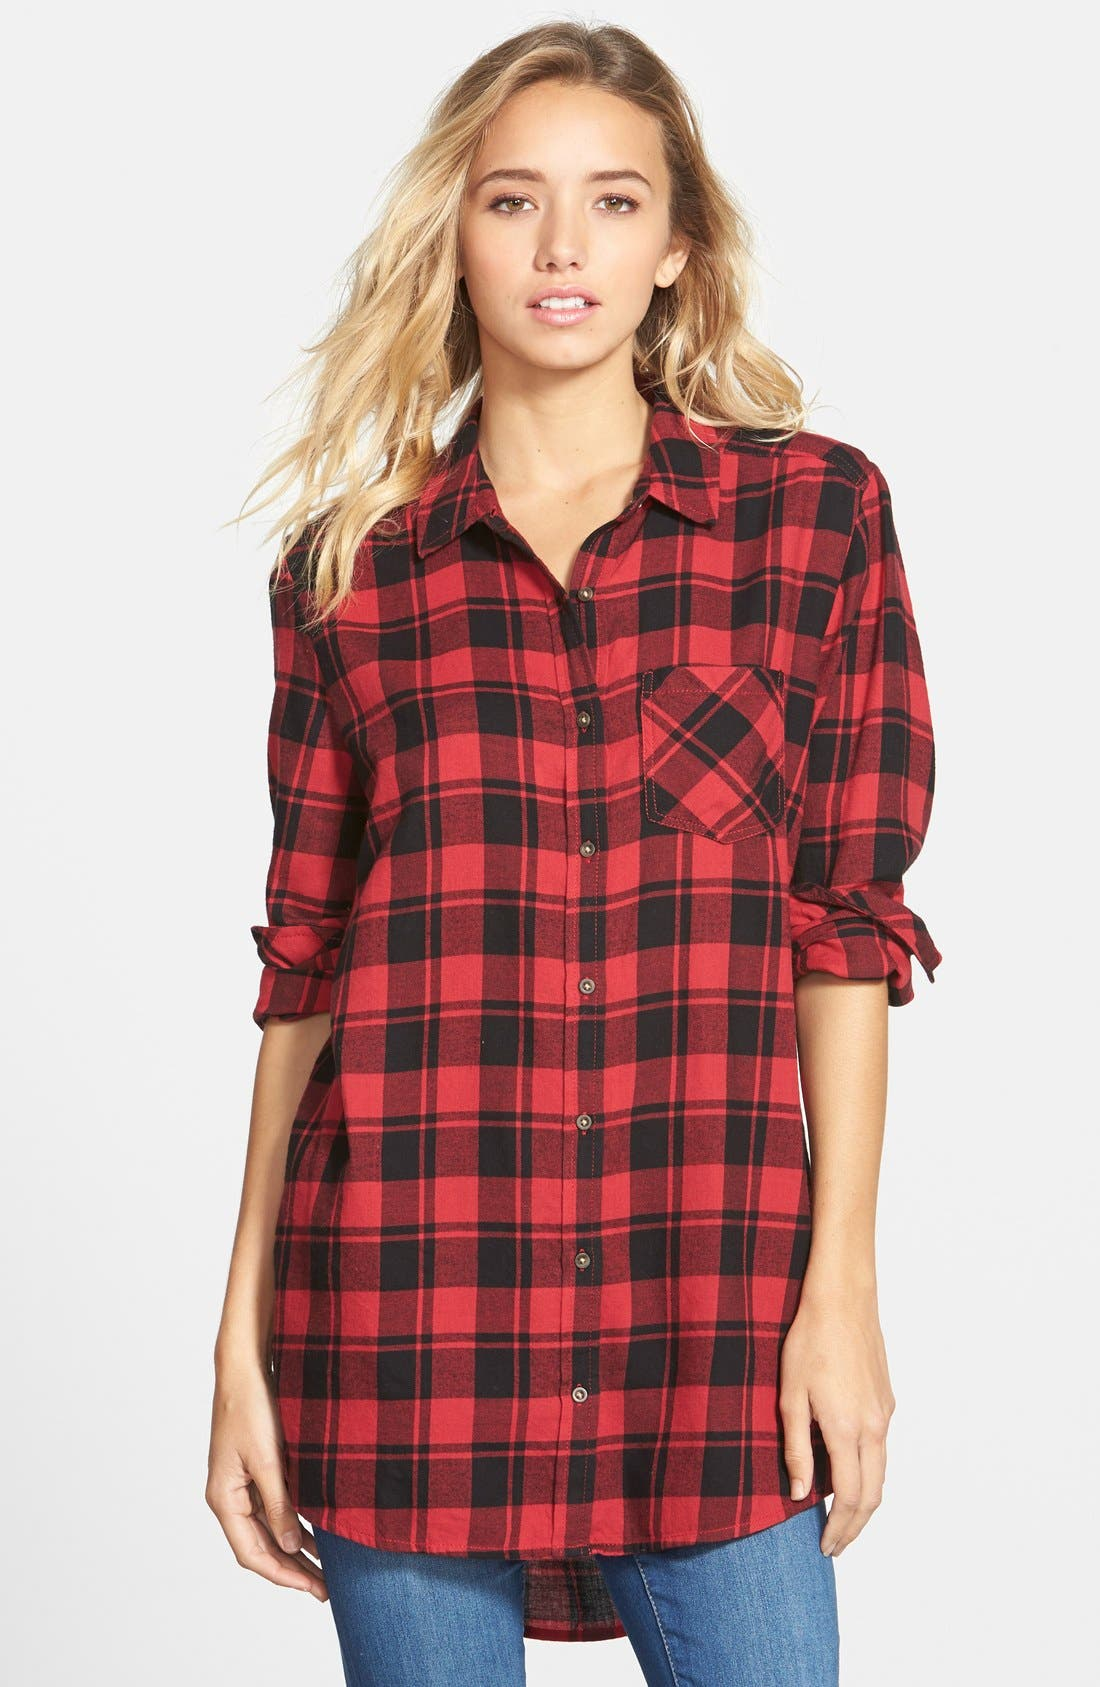 Alternate Image 1 Selected - BP. Plaid Shirt